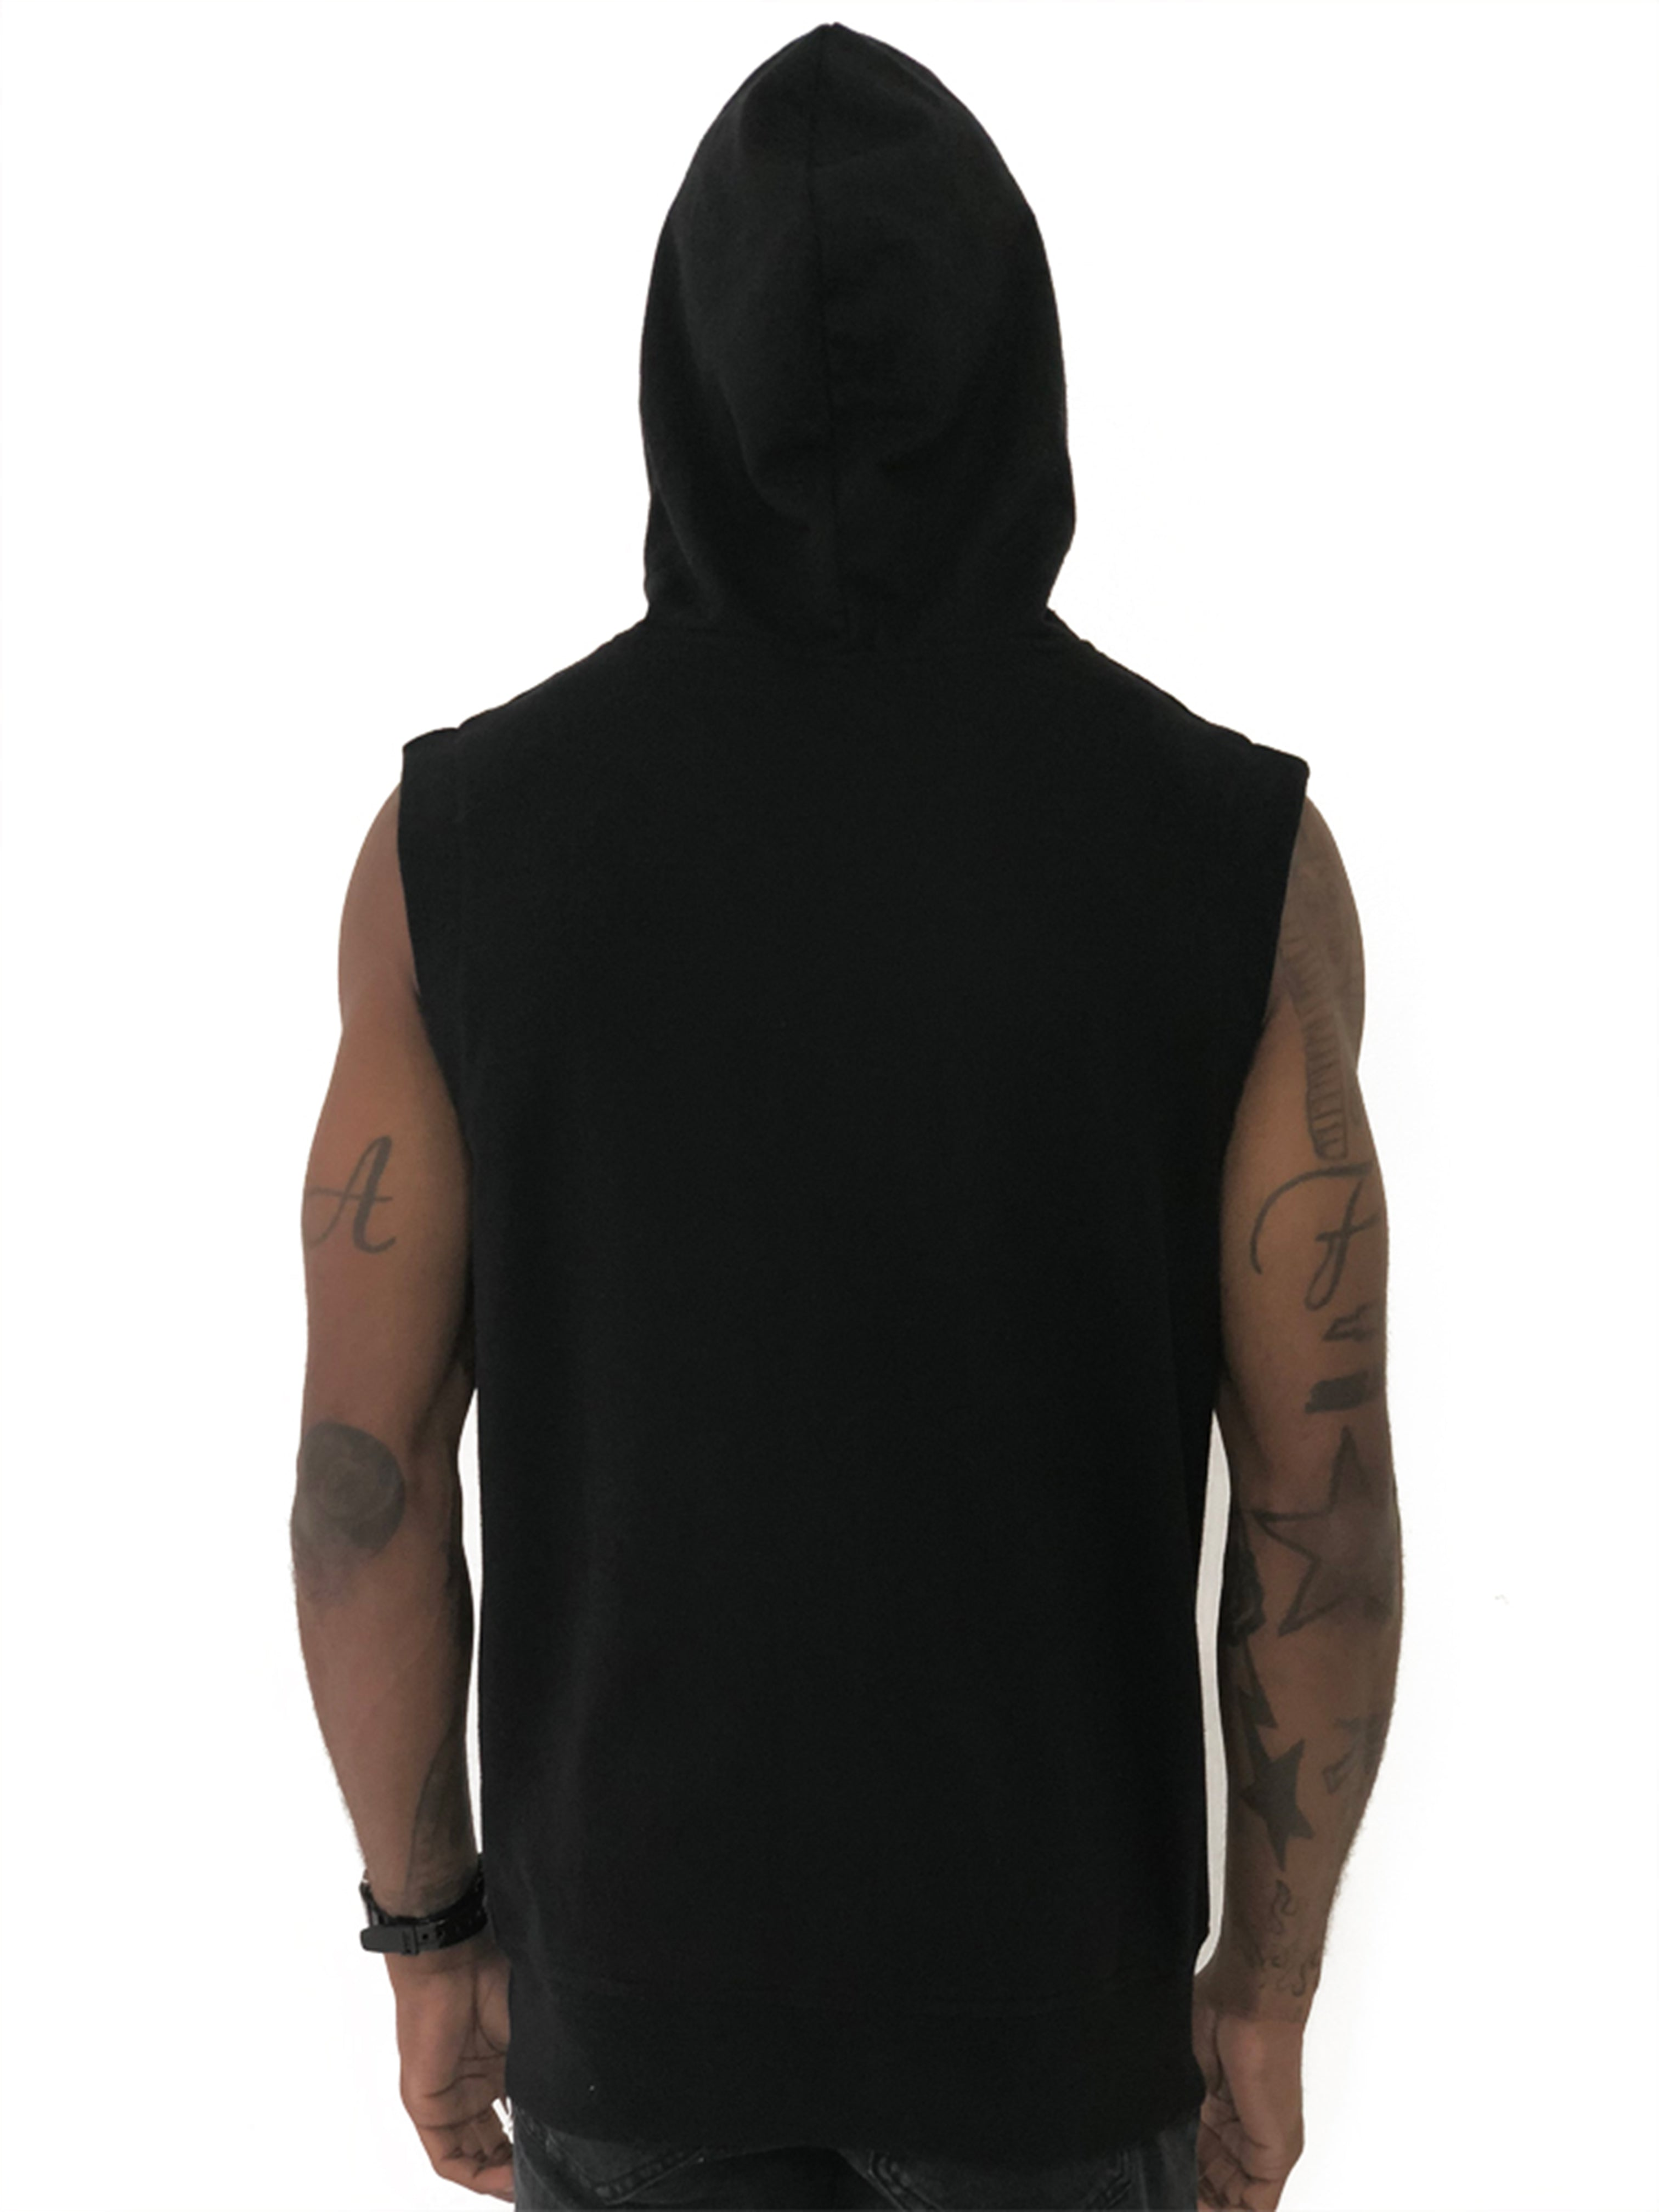 Black Sleeveless Vest with Hoodie by Limited Manchester 3